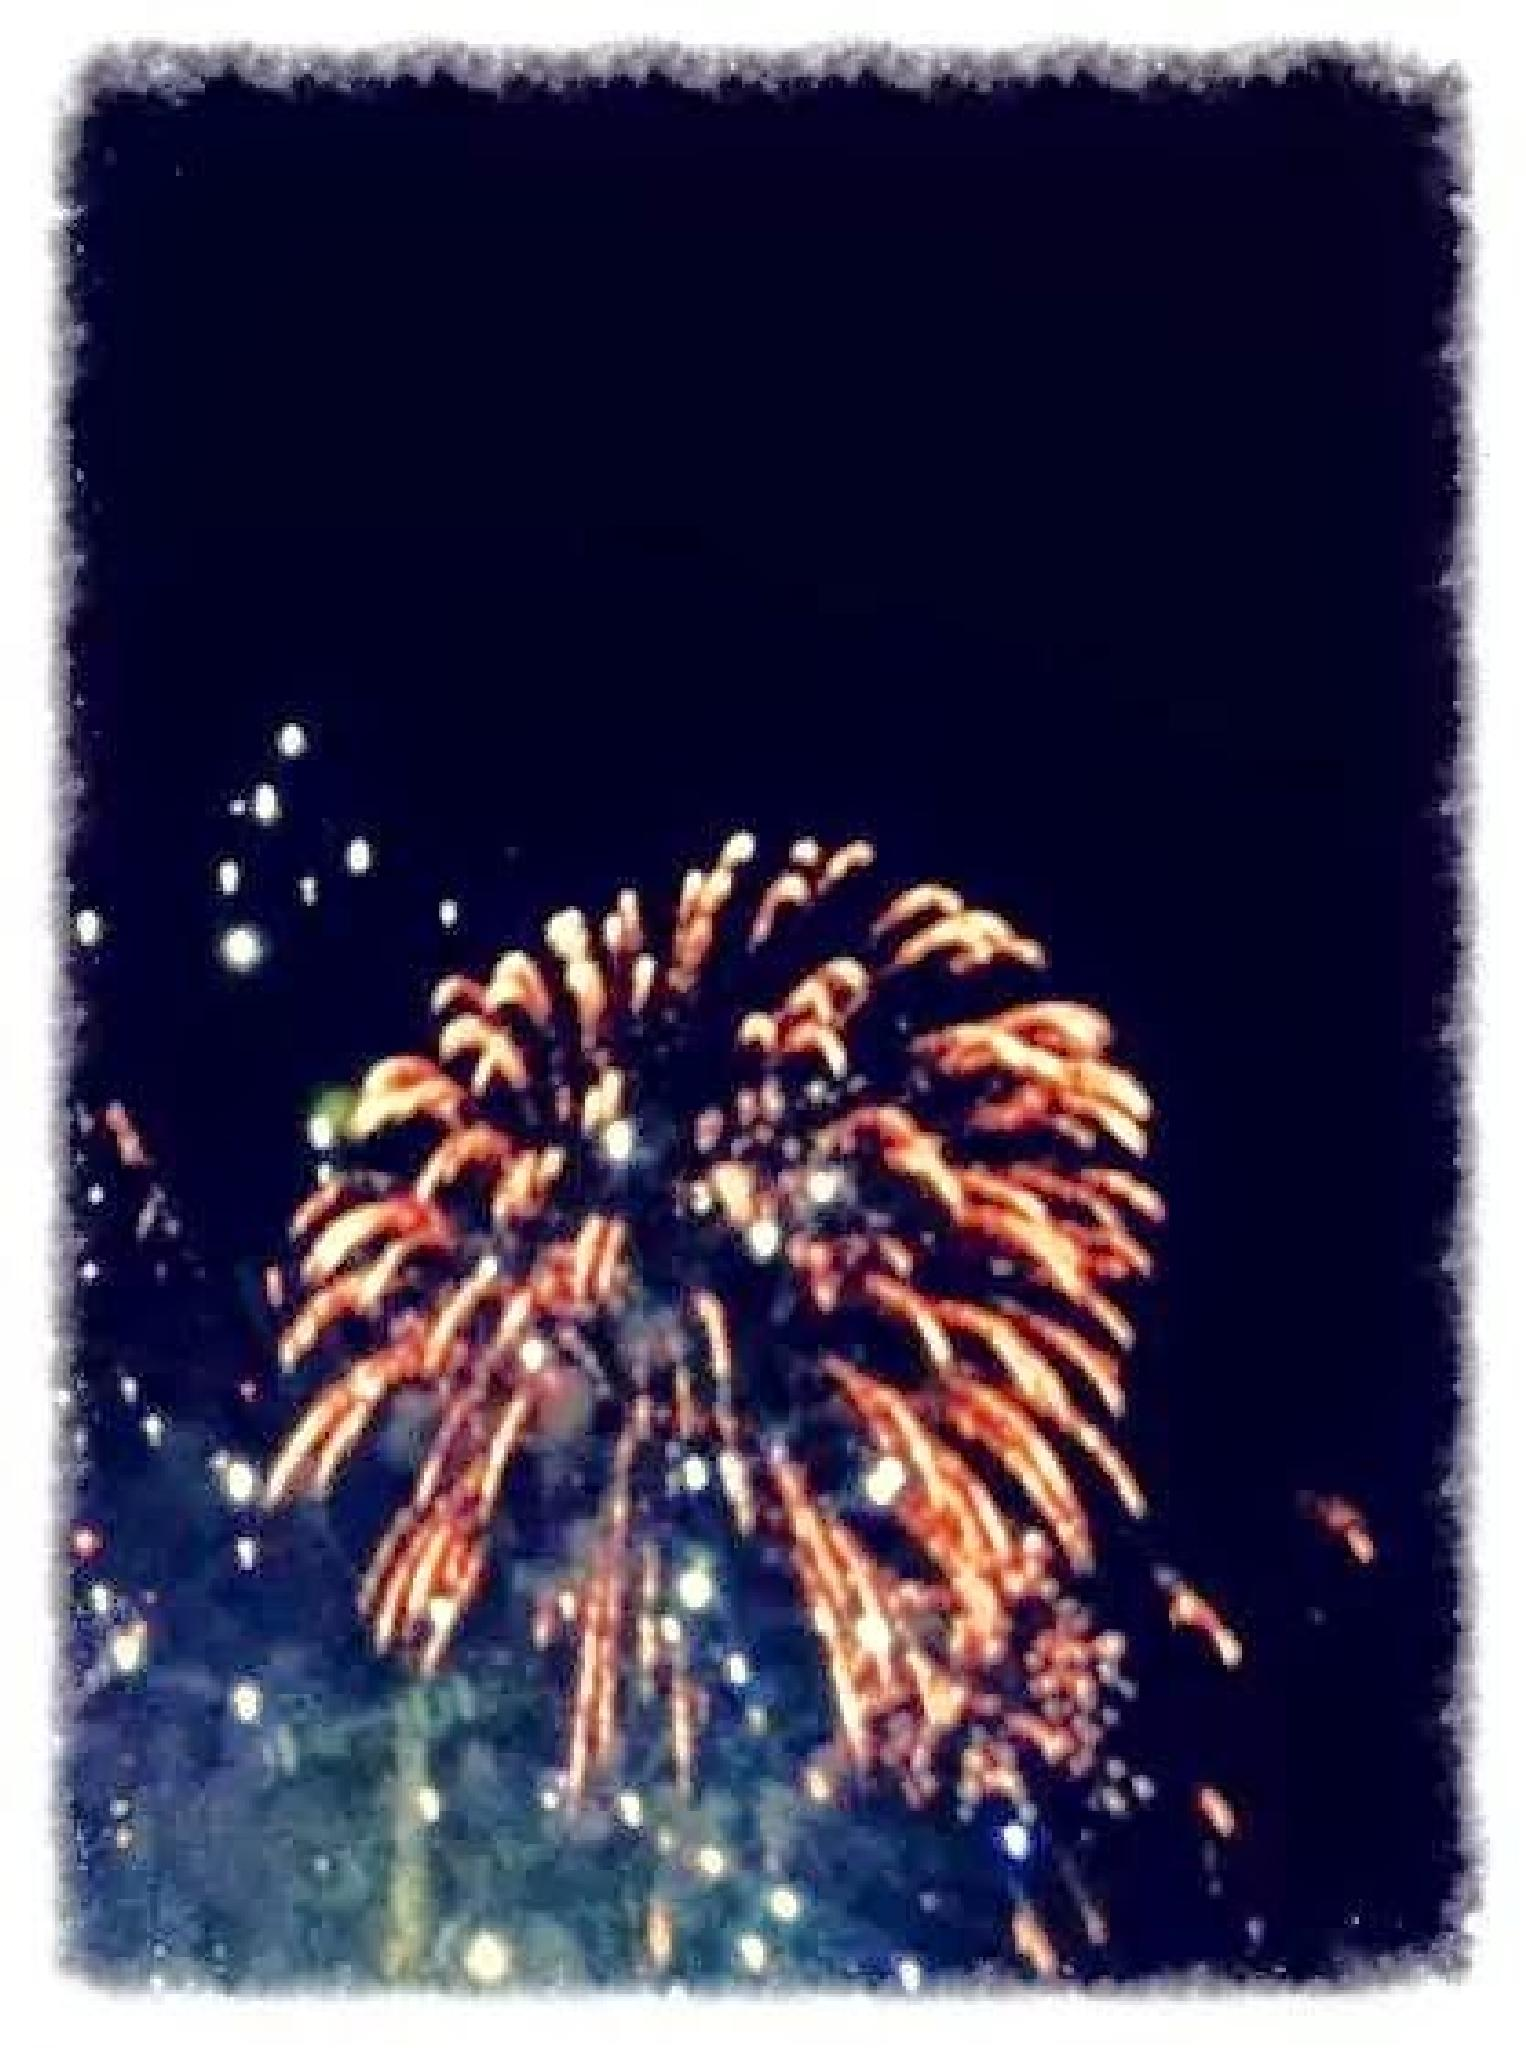 4th of July by jessica.k.whitehead1